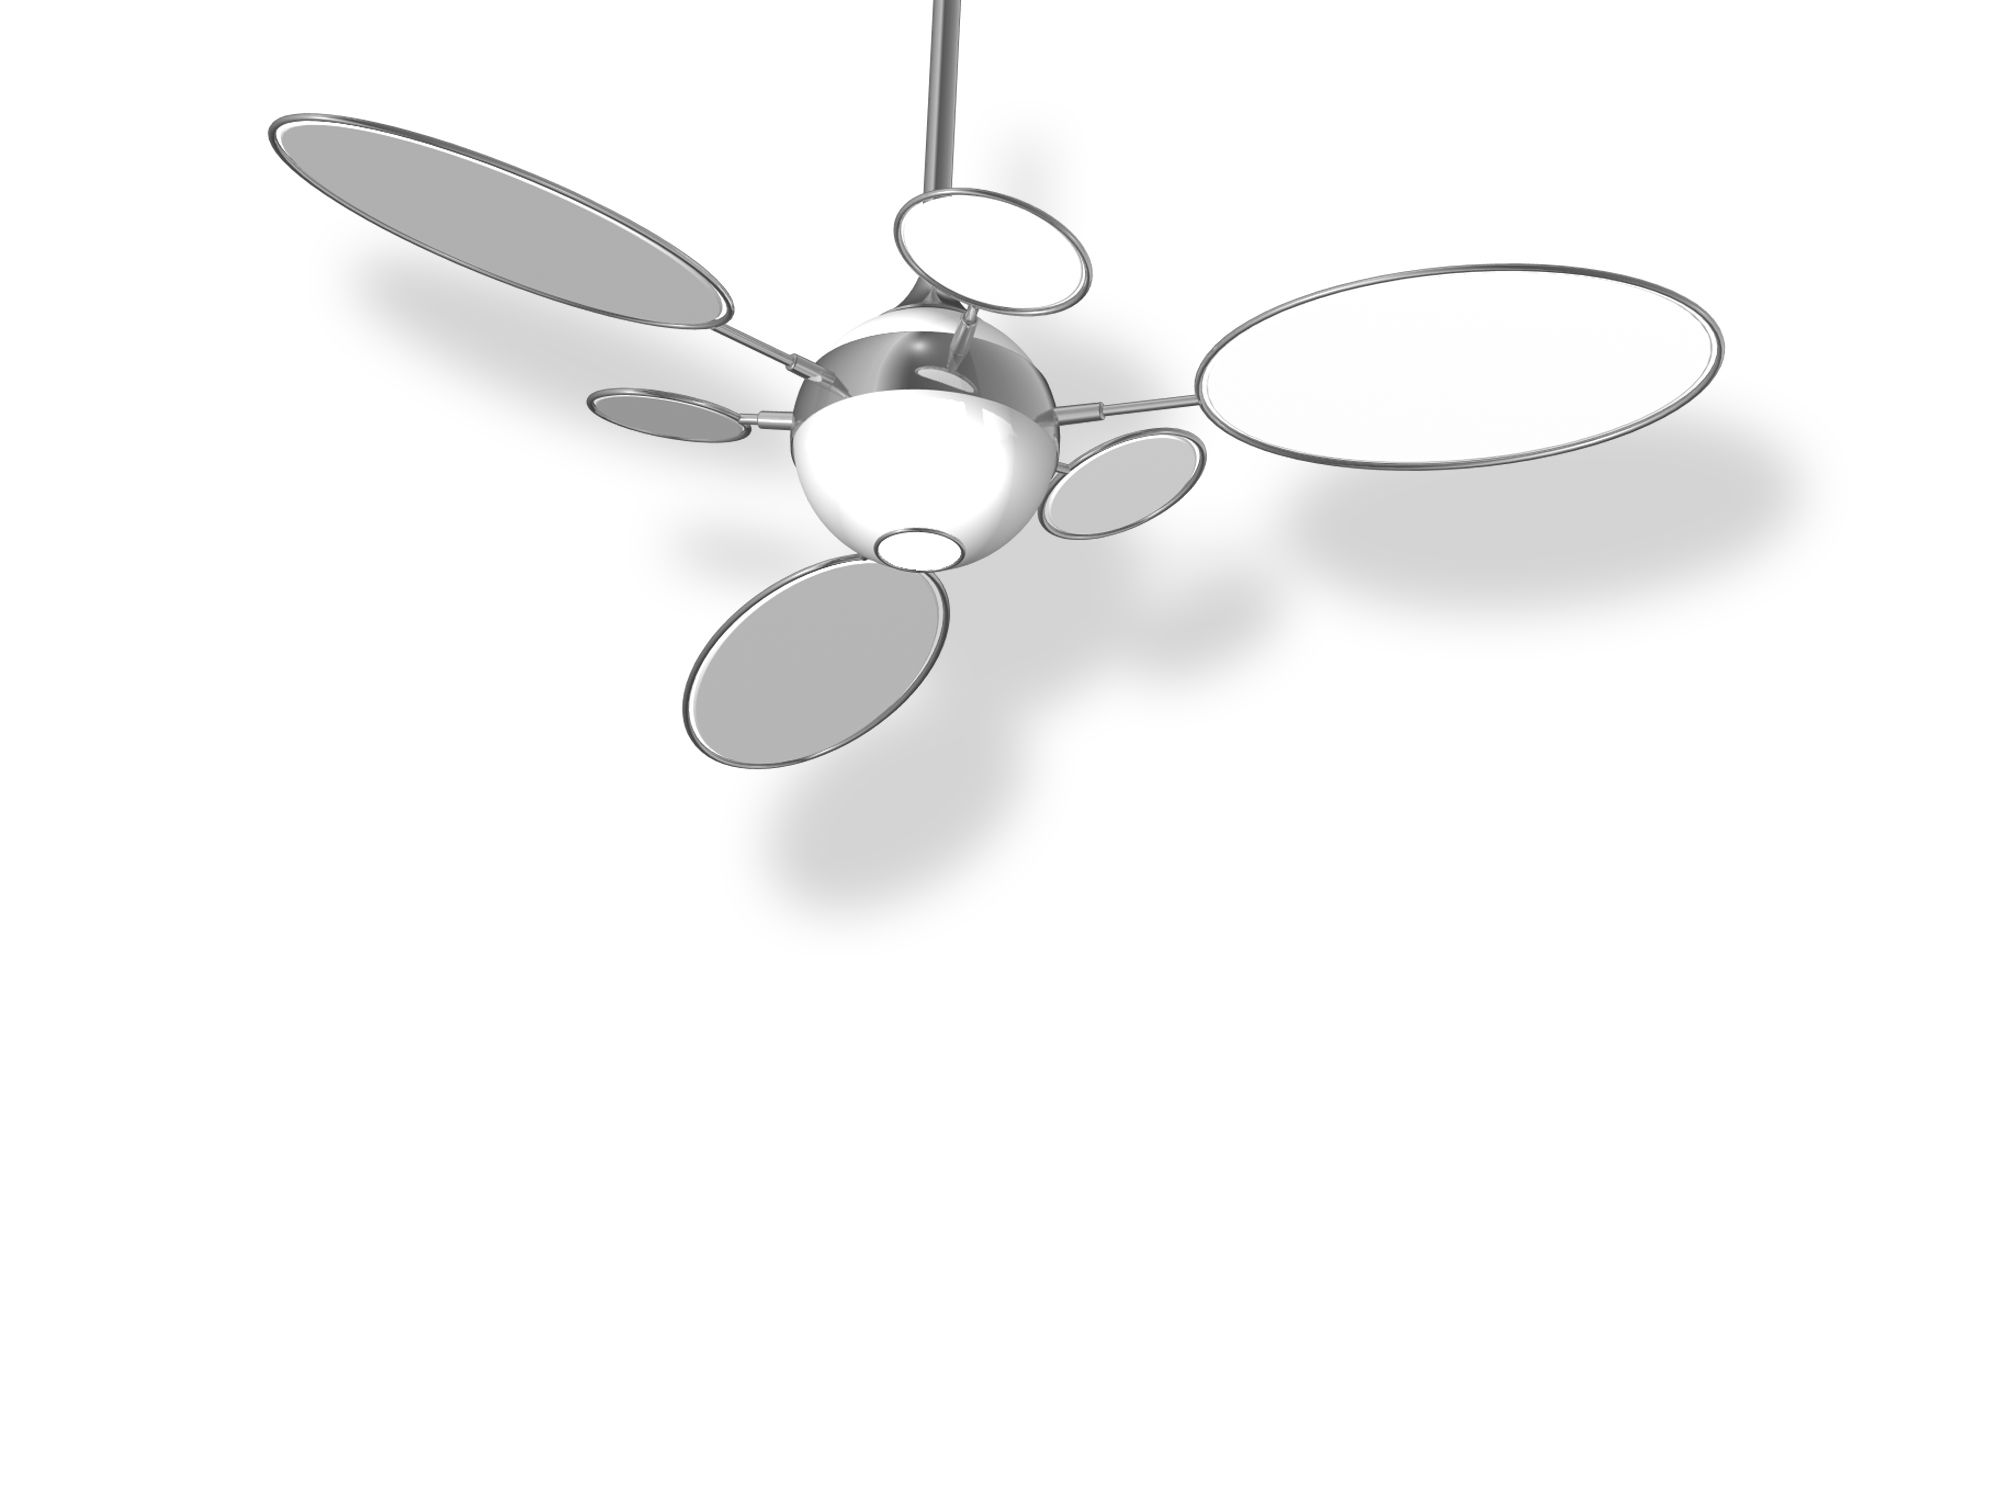 Mirrored Ceiling Fan Looks Like